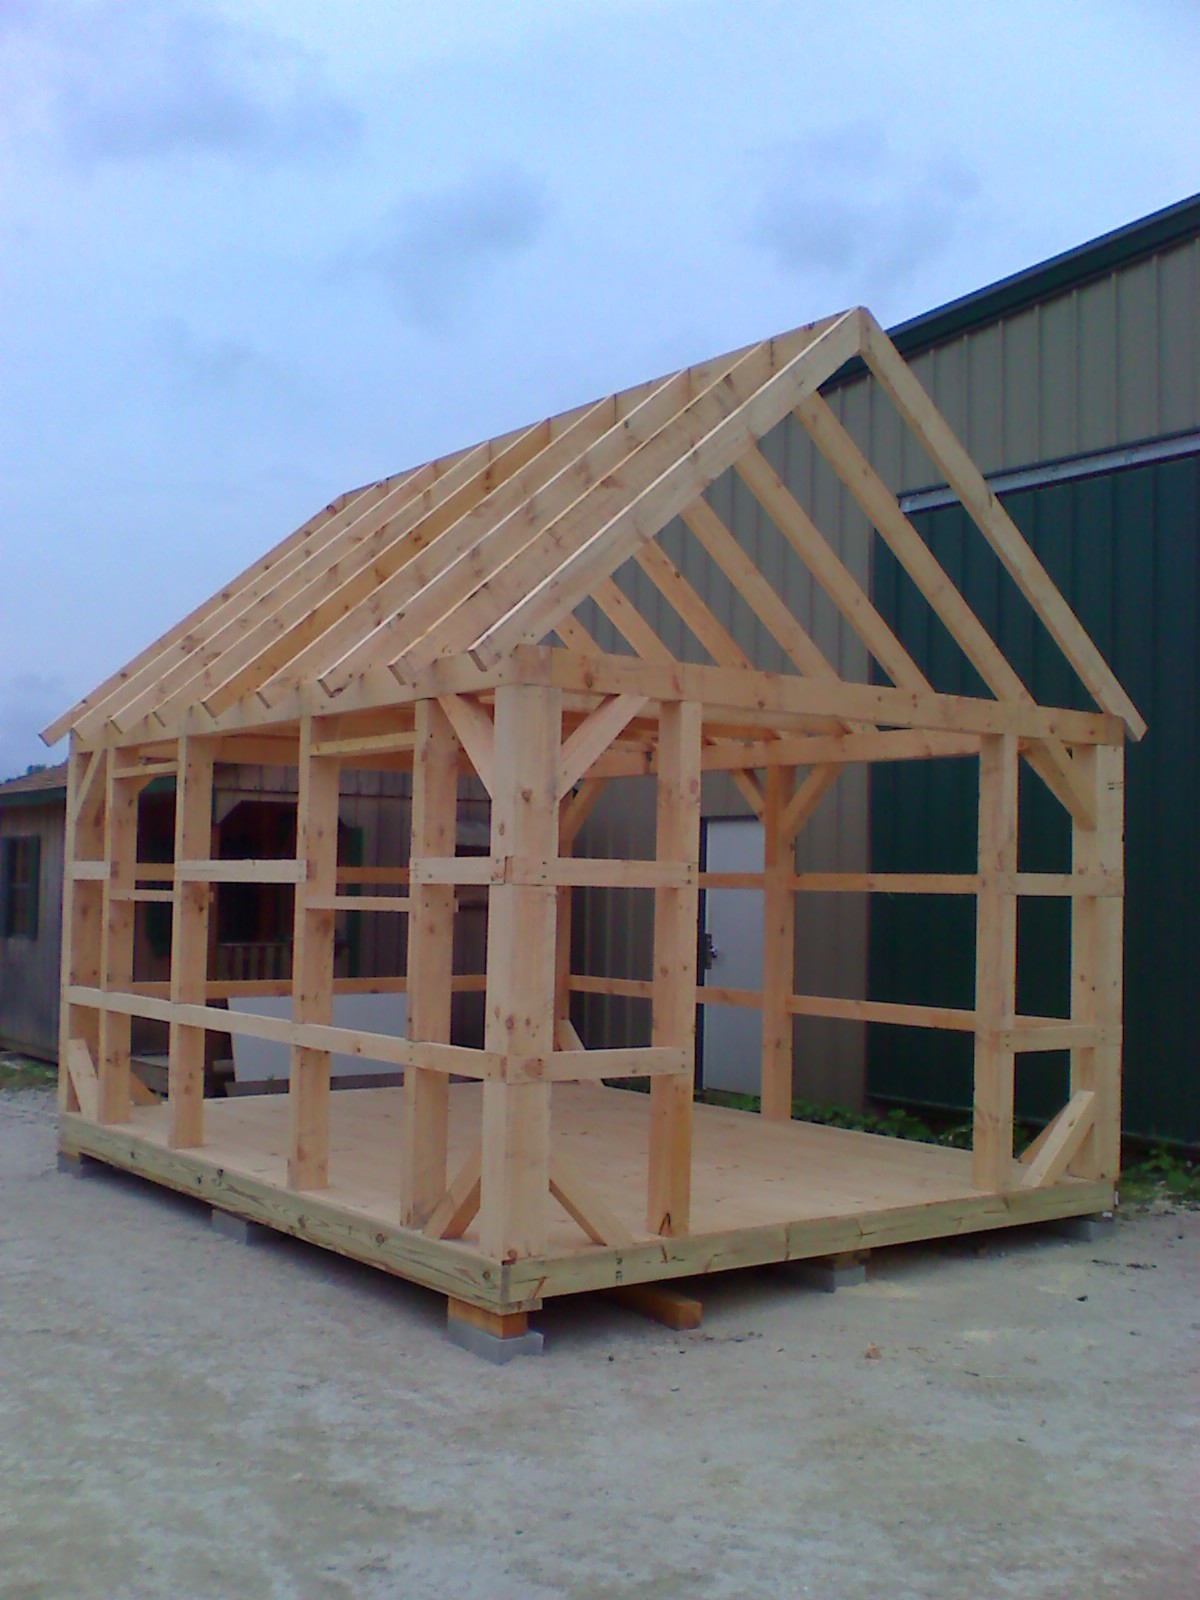 12' x 16' Timber Frame Easy Shed